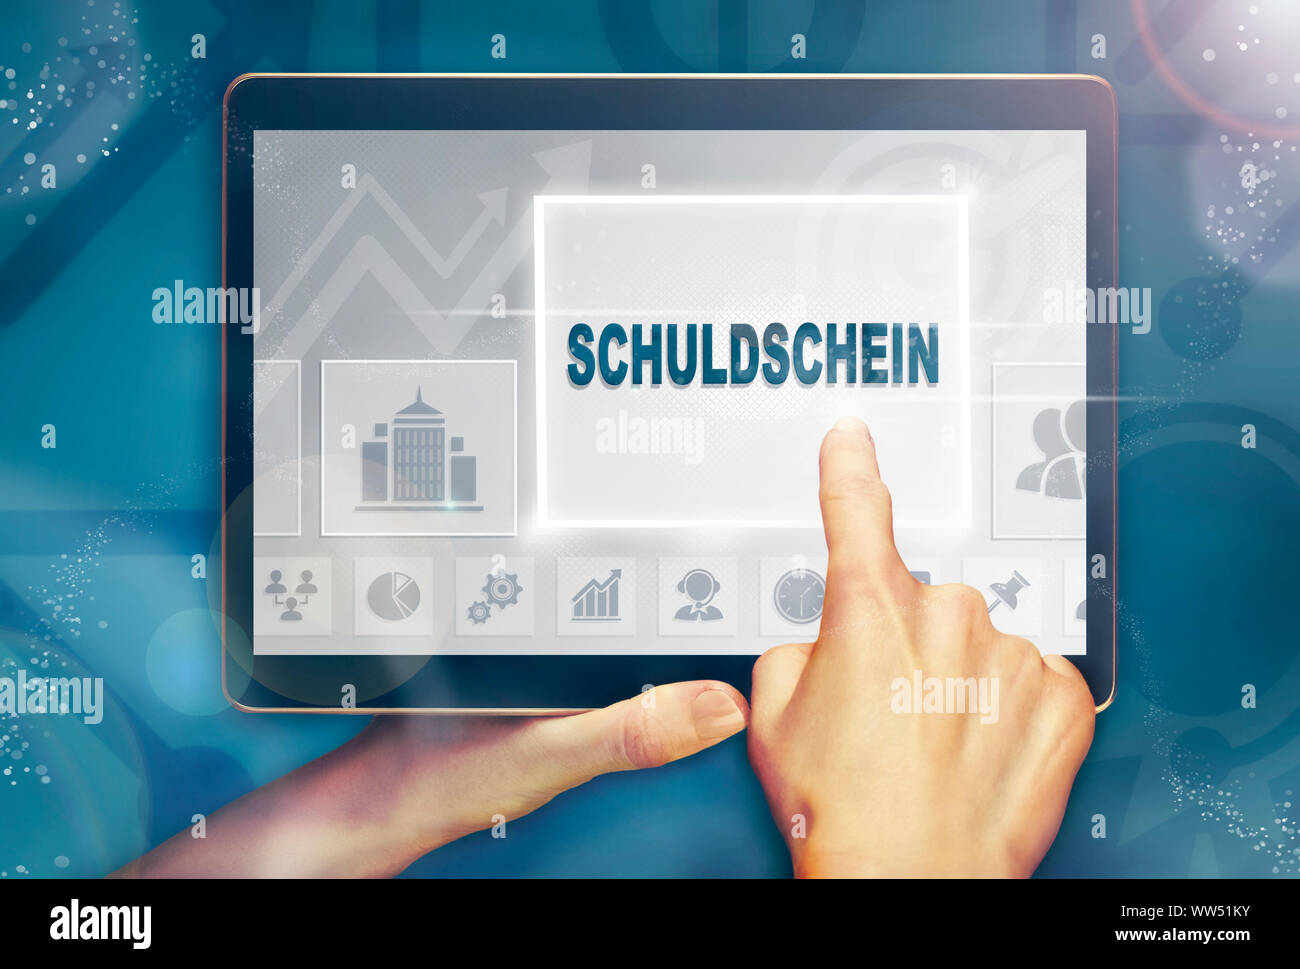 """A hand holiding a computer tablet and pressing a Promissory Note """"Schuldschein"""" business concept. Stock Photo"""